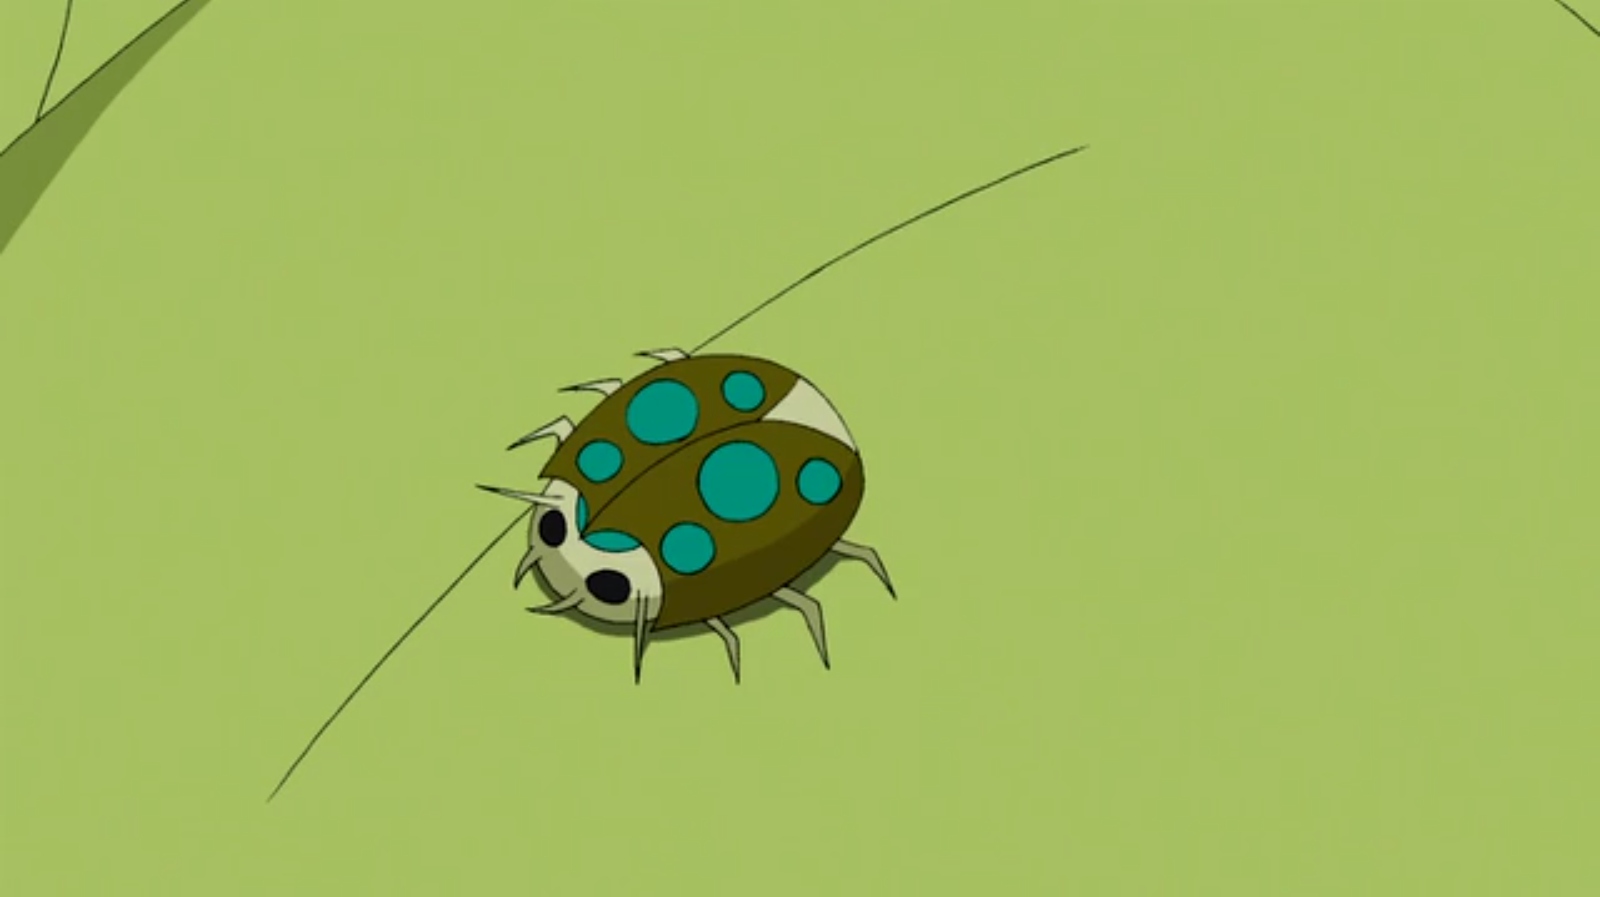 Max (Wrenchfield's pet)